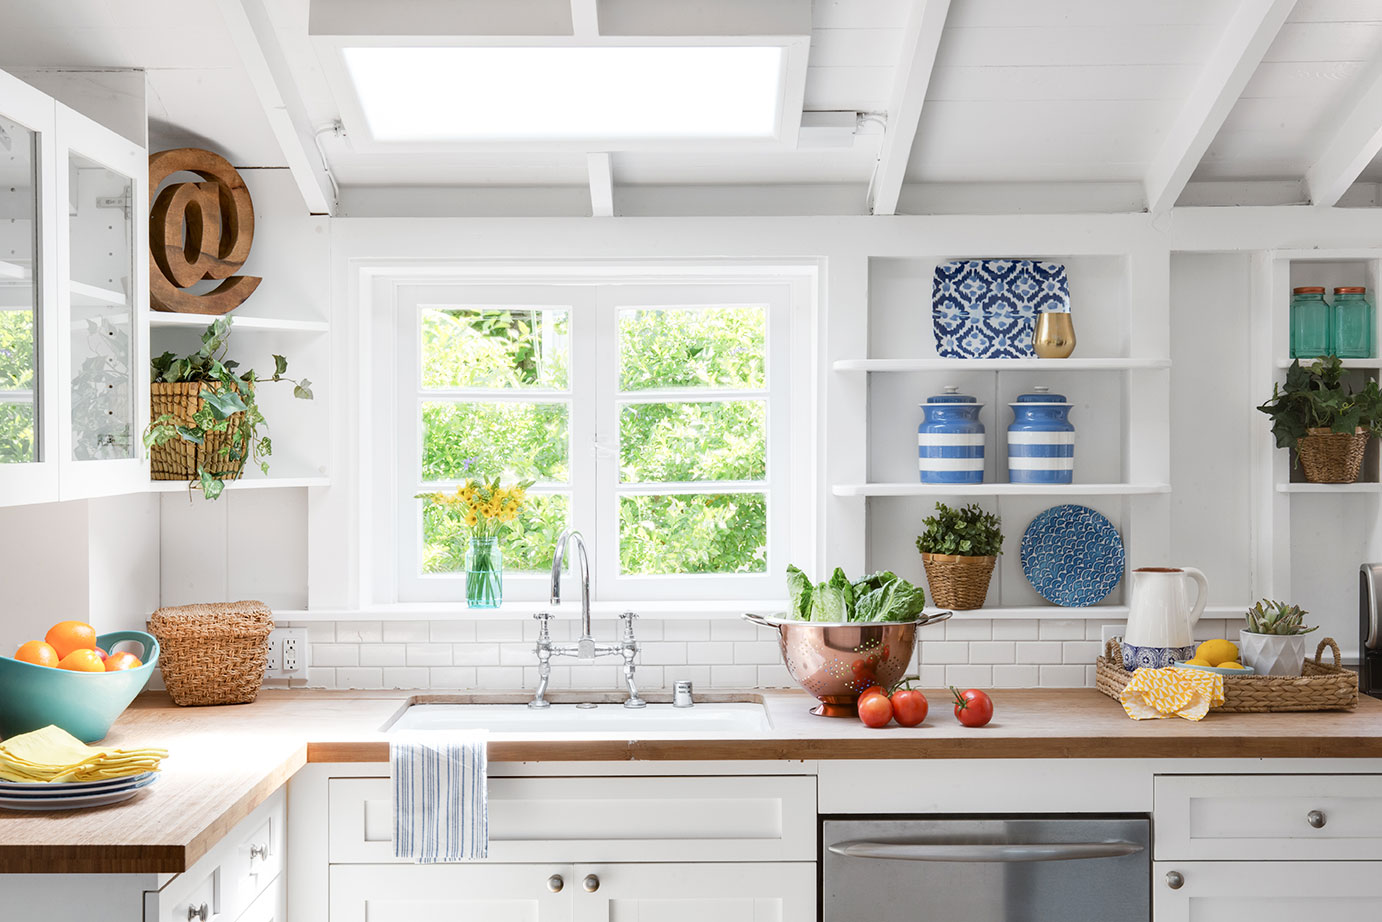 bright white kitchen with blue accents and wooden countertops.